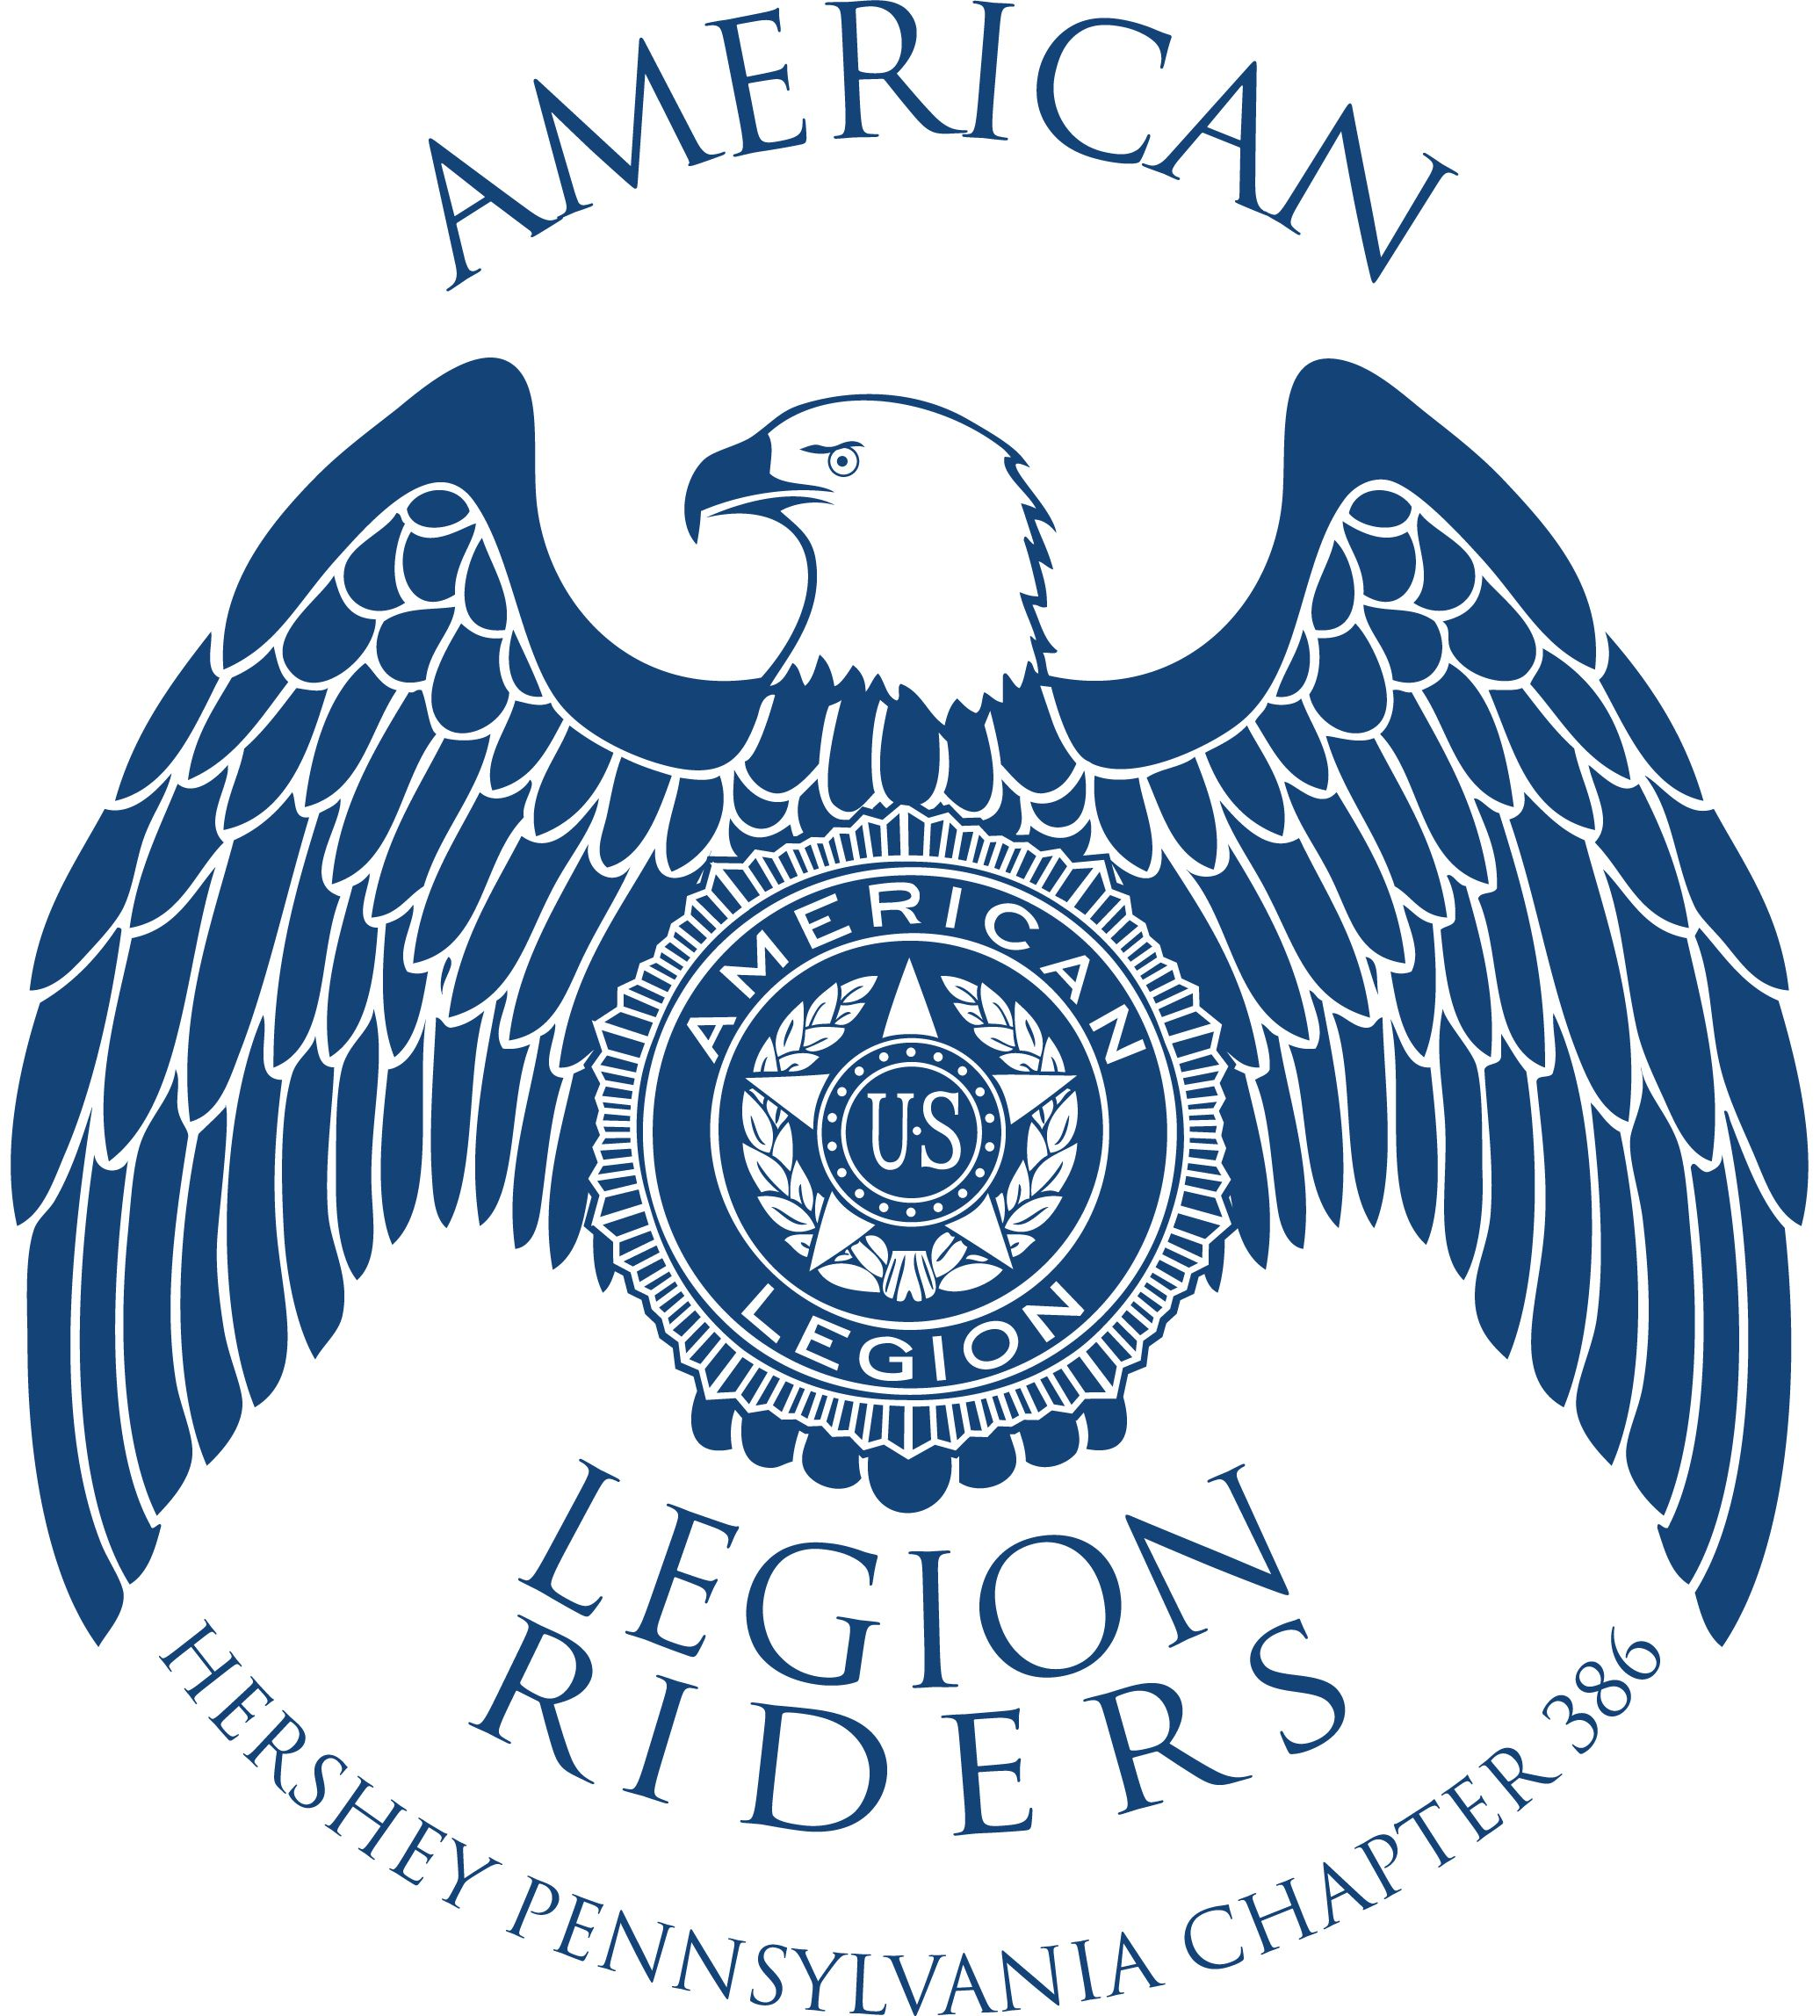 American Legion Riders Hershey Pennsylvania Chapter 386 logo.